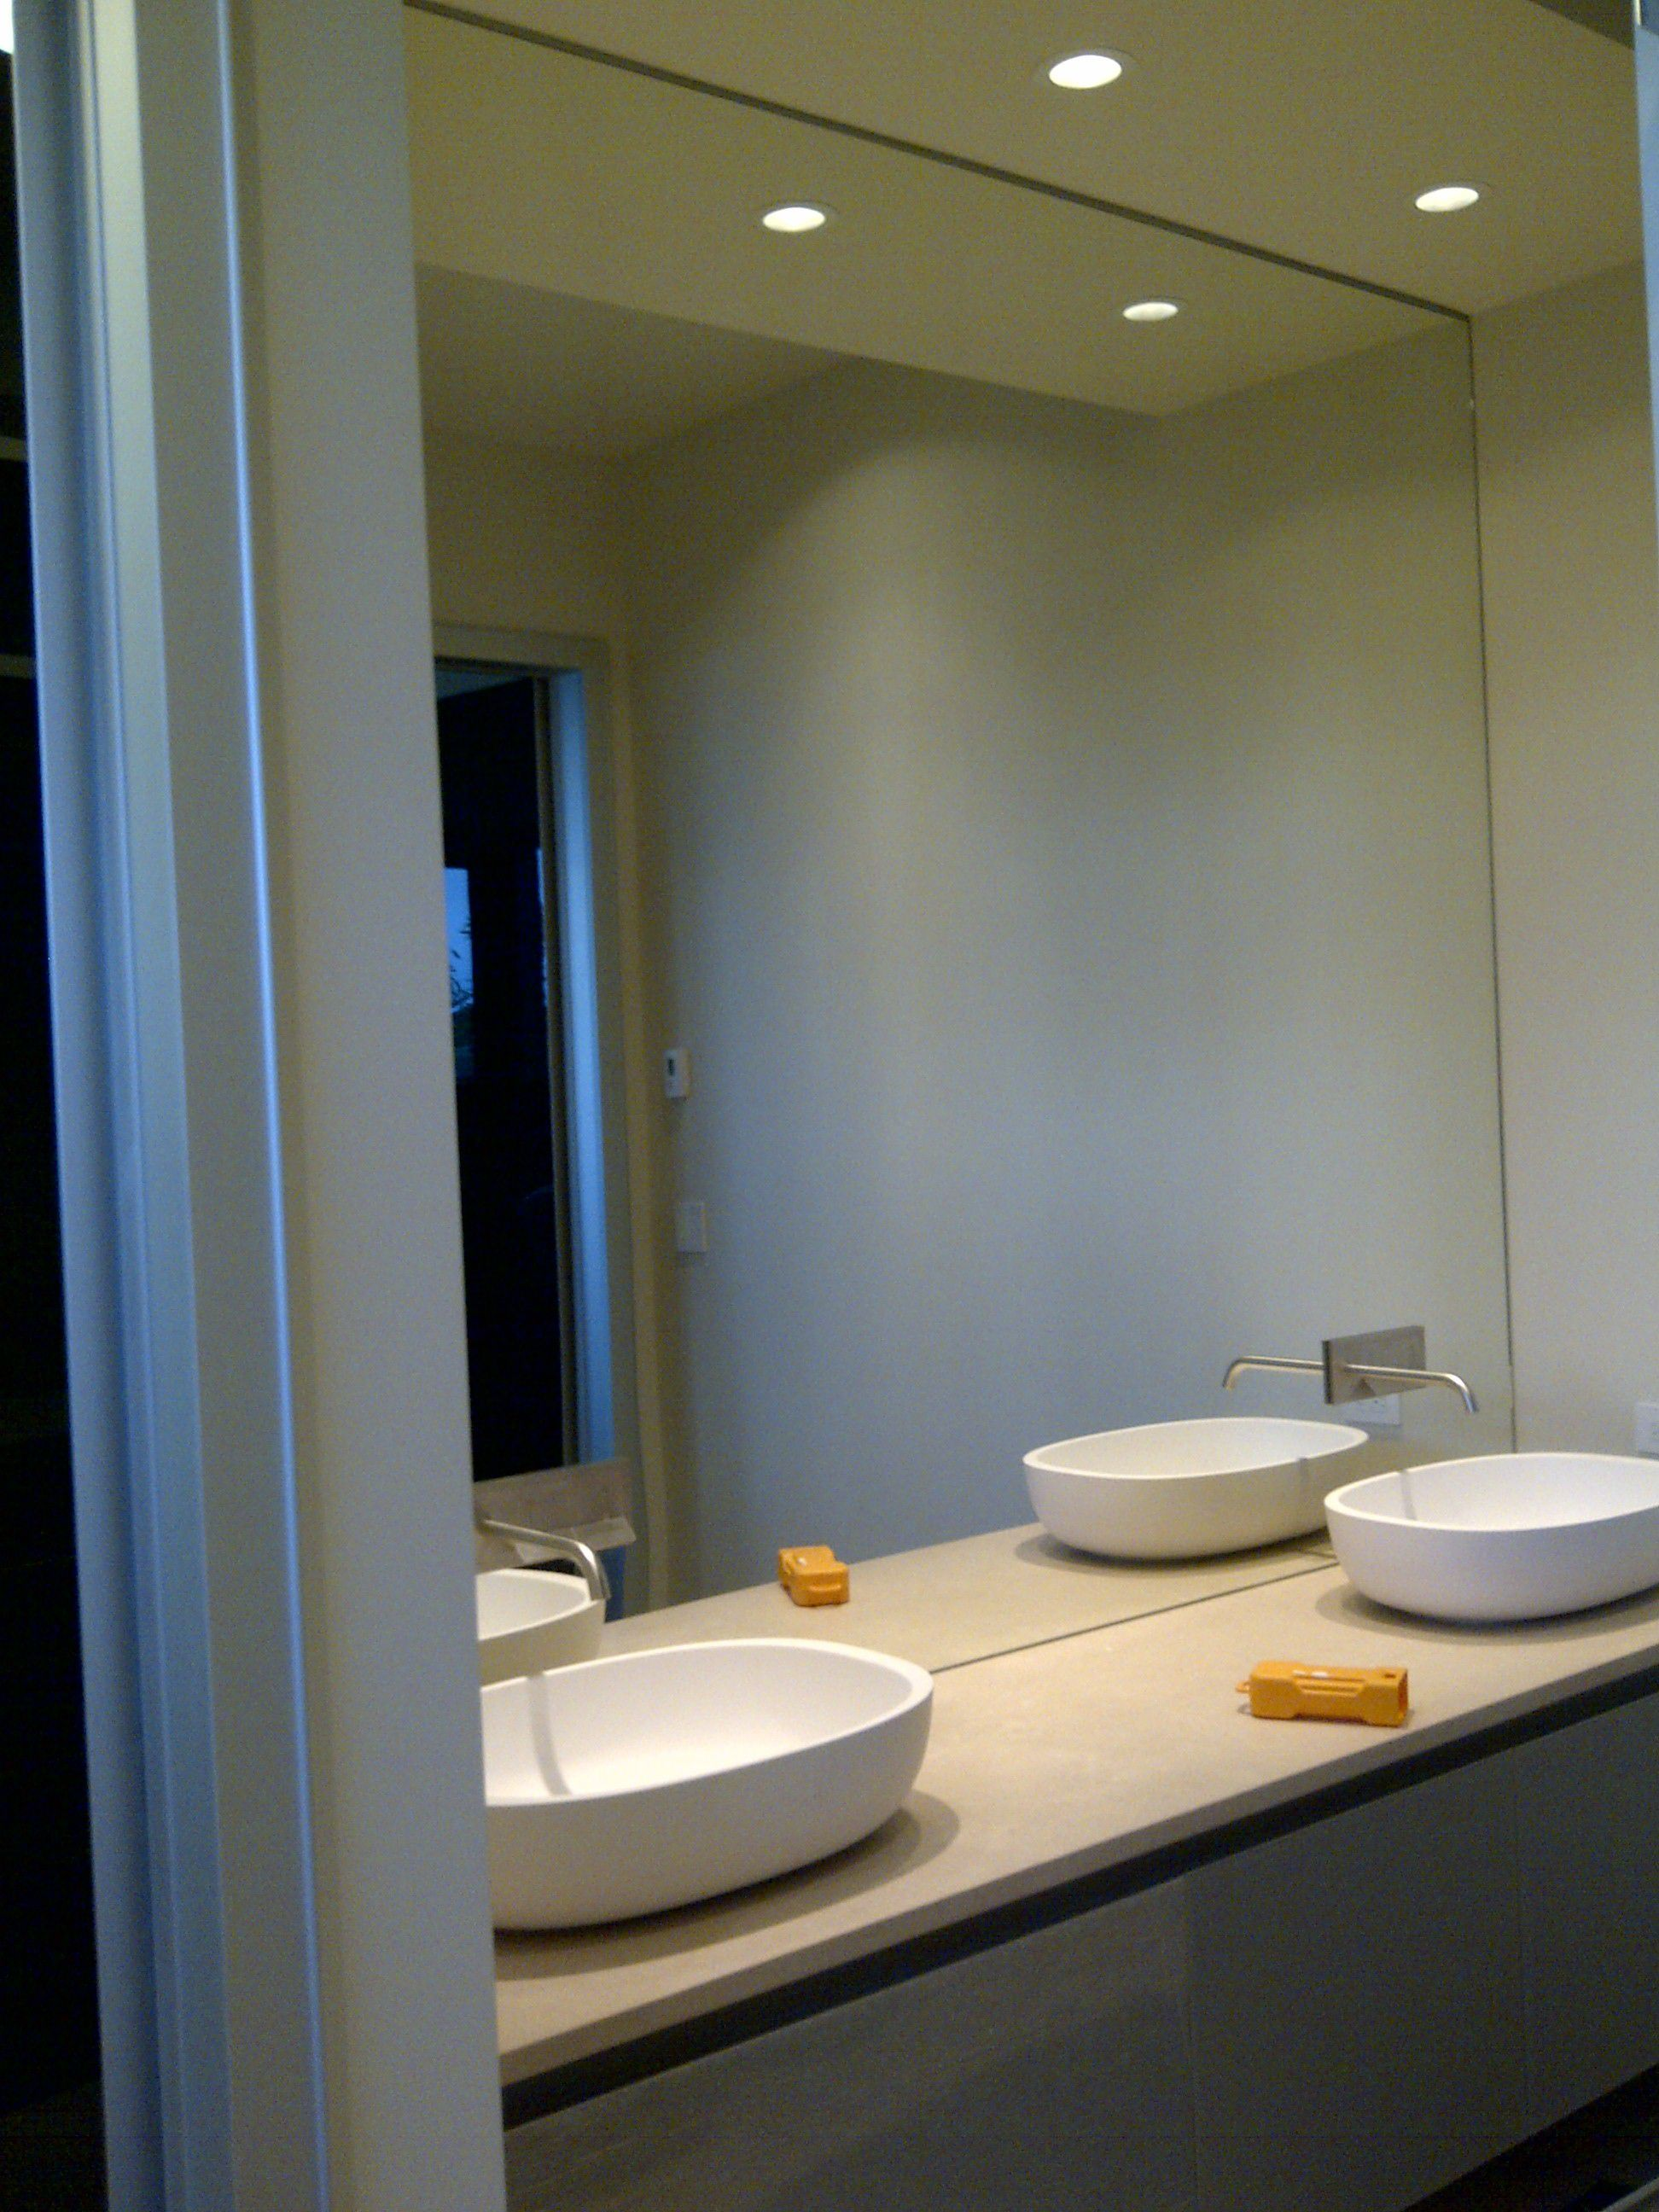 Superb Design Of The Bathroom Areas With White Double Sink Added Mirror Ideas